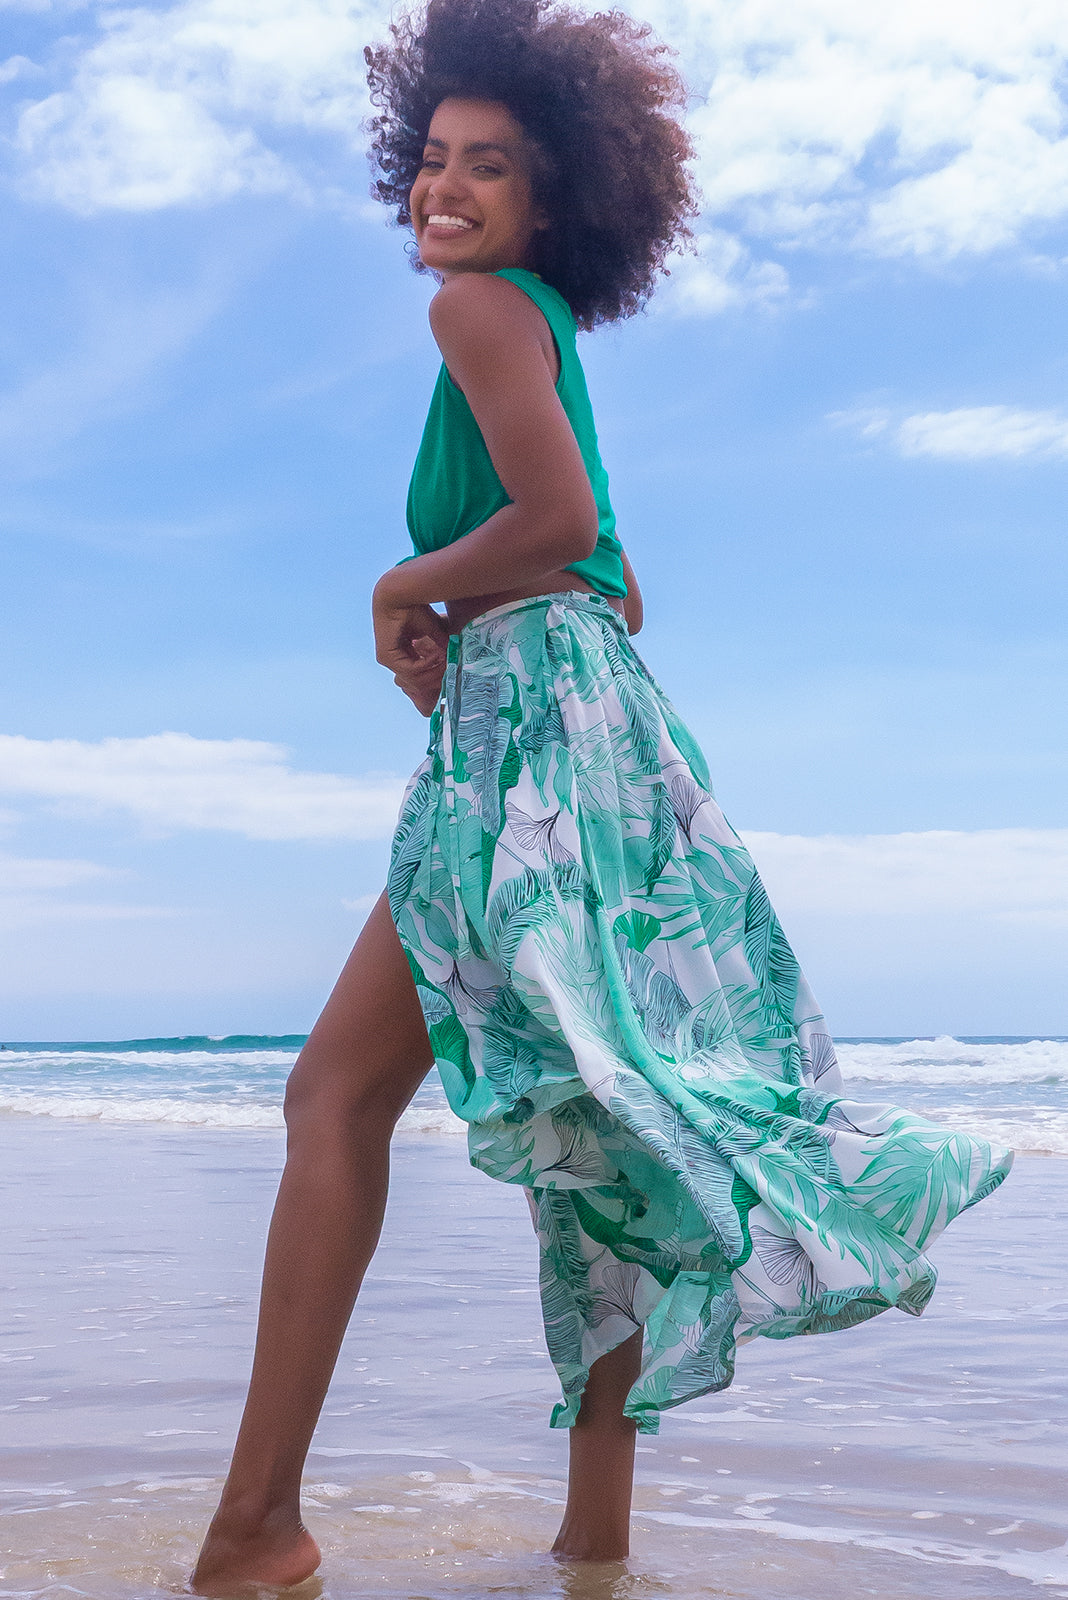 The Toucana Whispering Palms Wrap Skirt is a functional wrap around design featuring tie waist, high/low hemline, elasticated back of waist, side pockets and 100% viscose in large leaf print on white base.